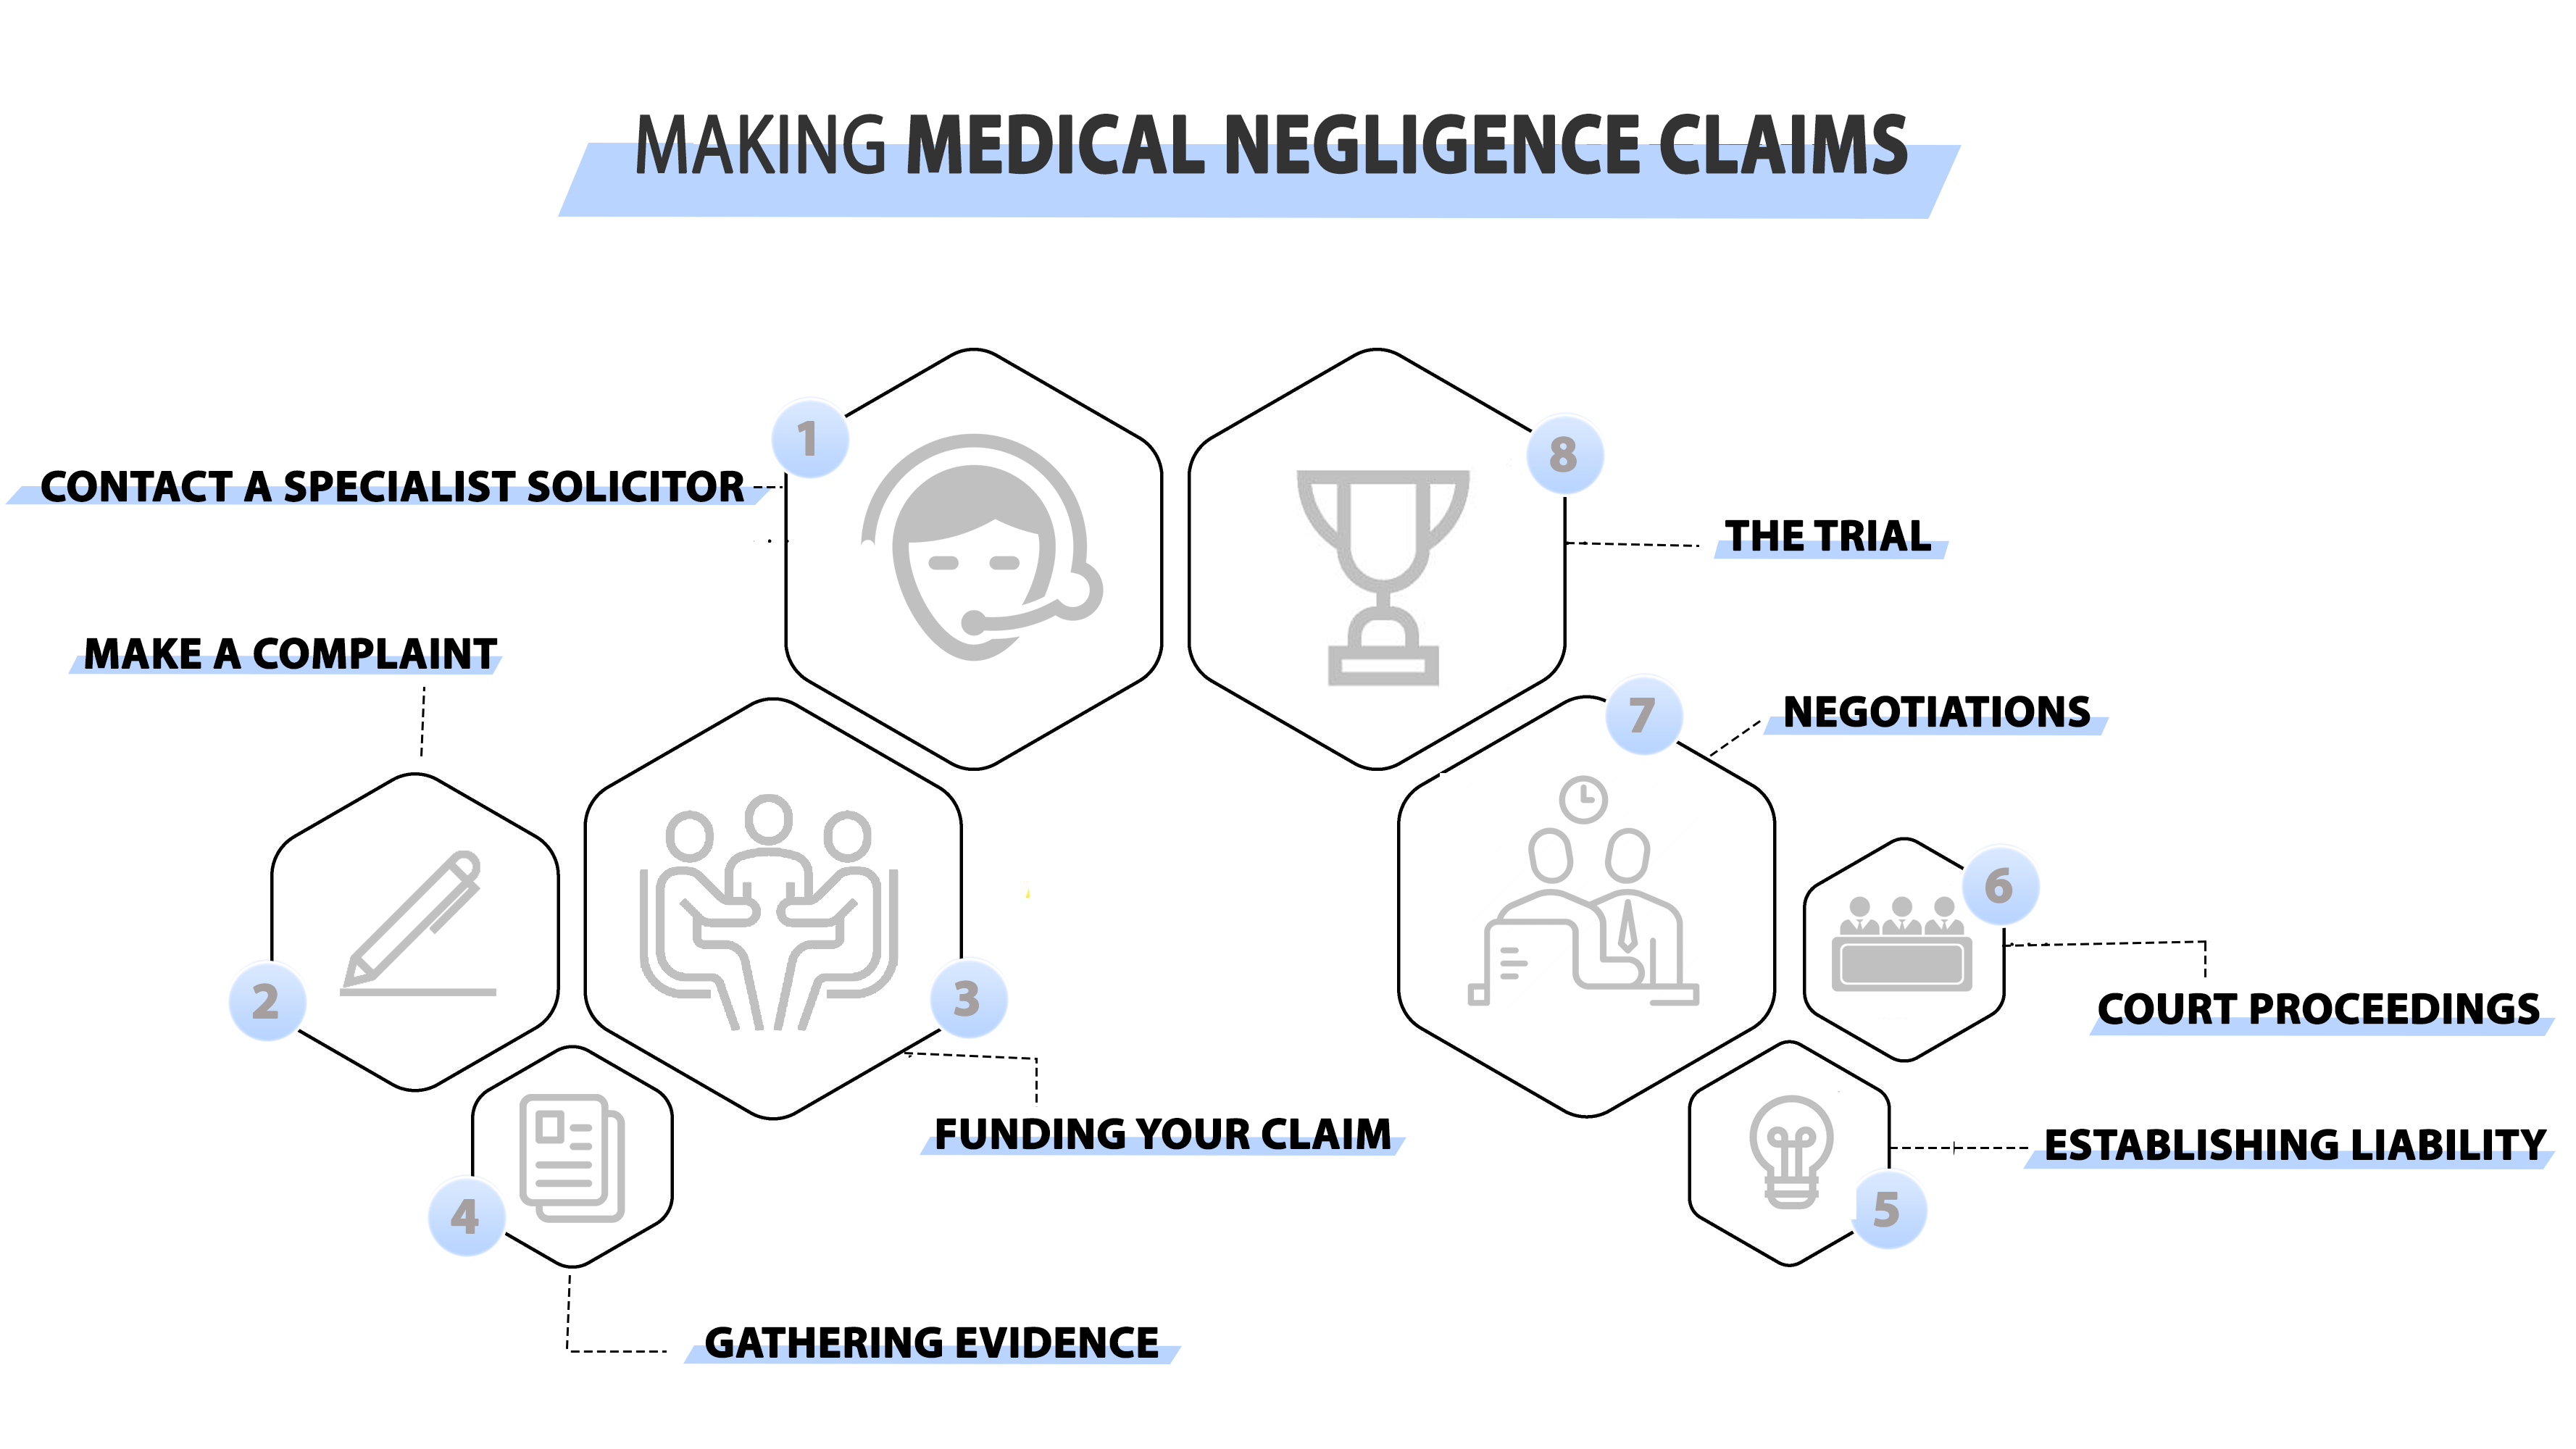 Steps to Making Medical Negligence Claims